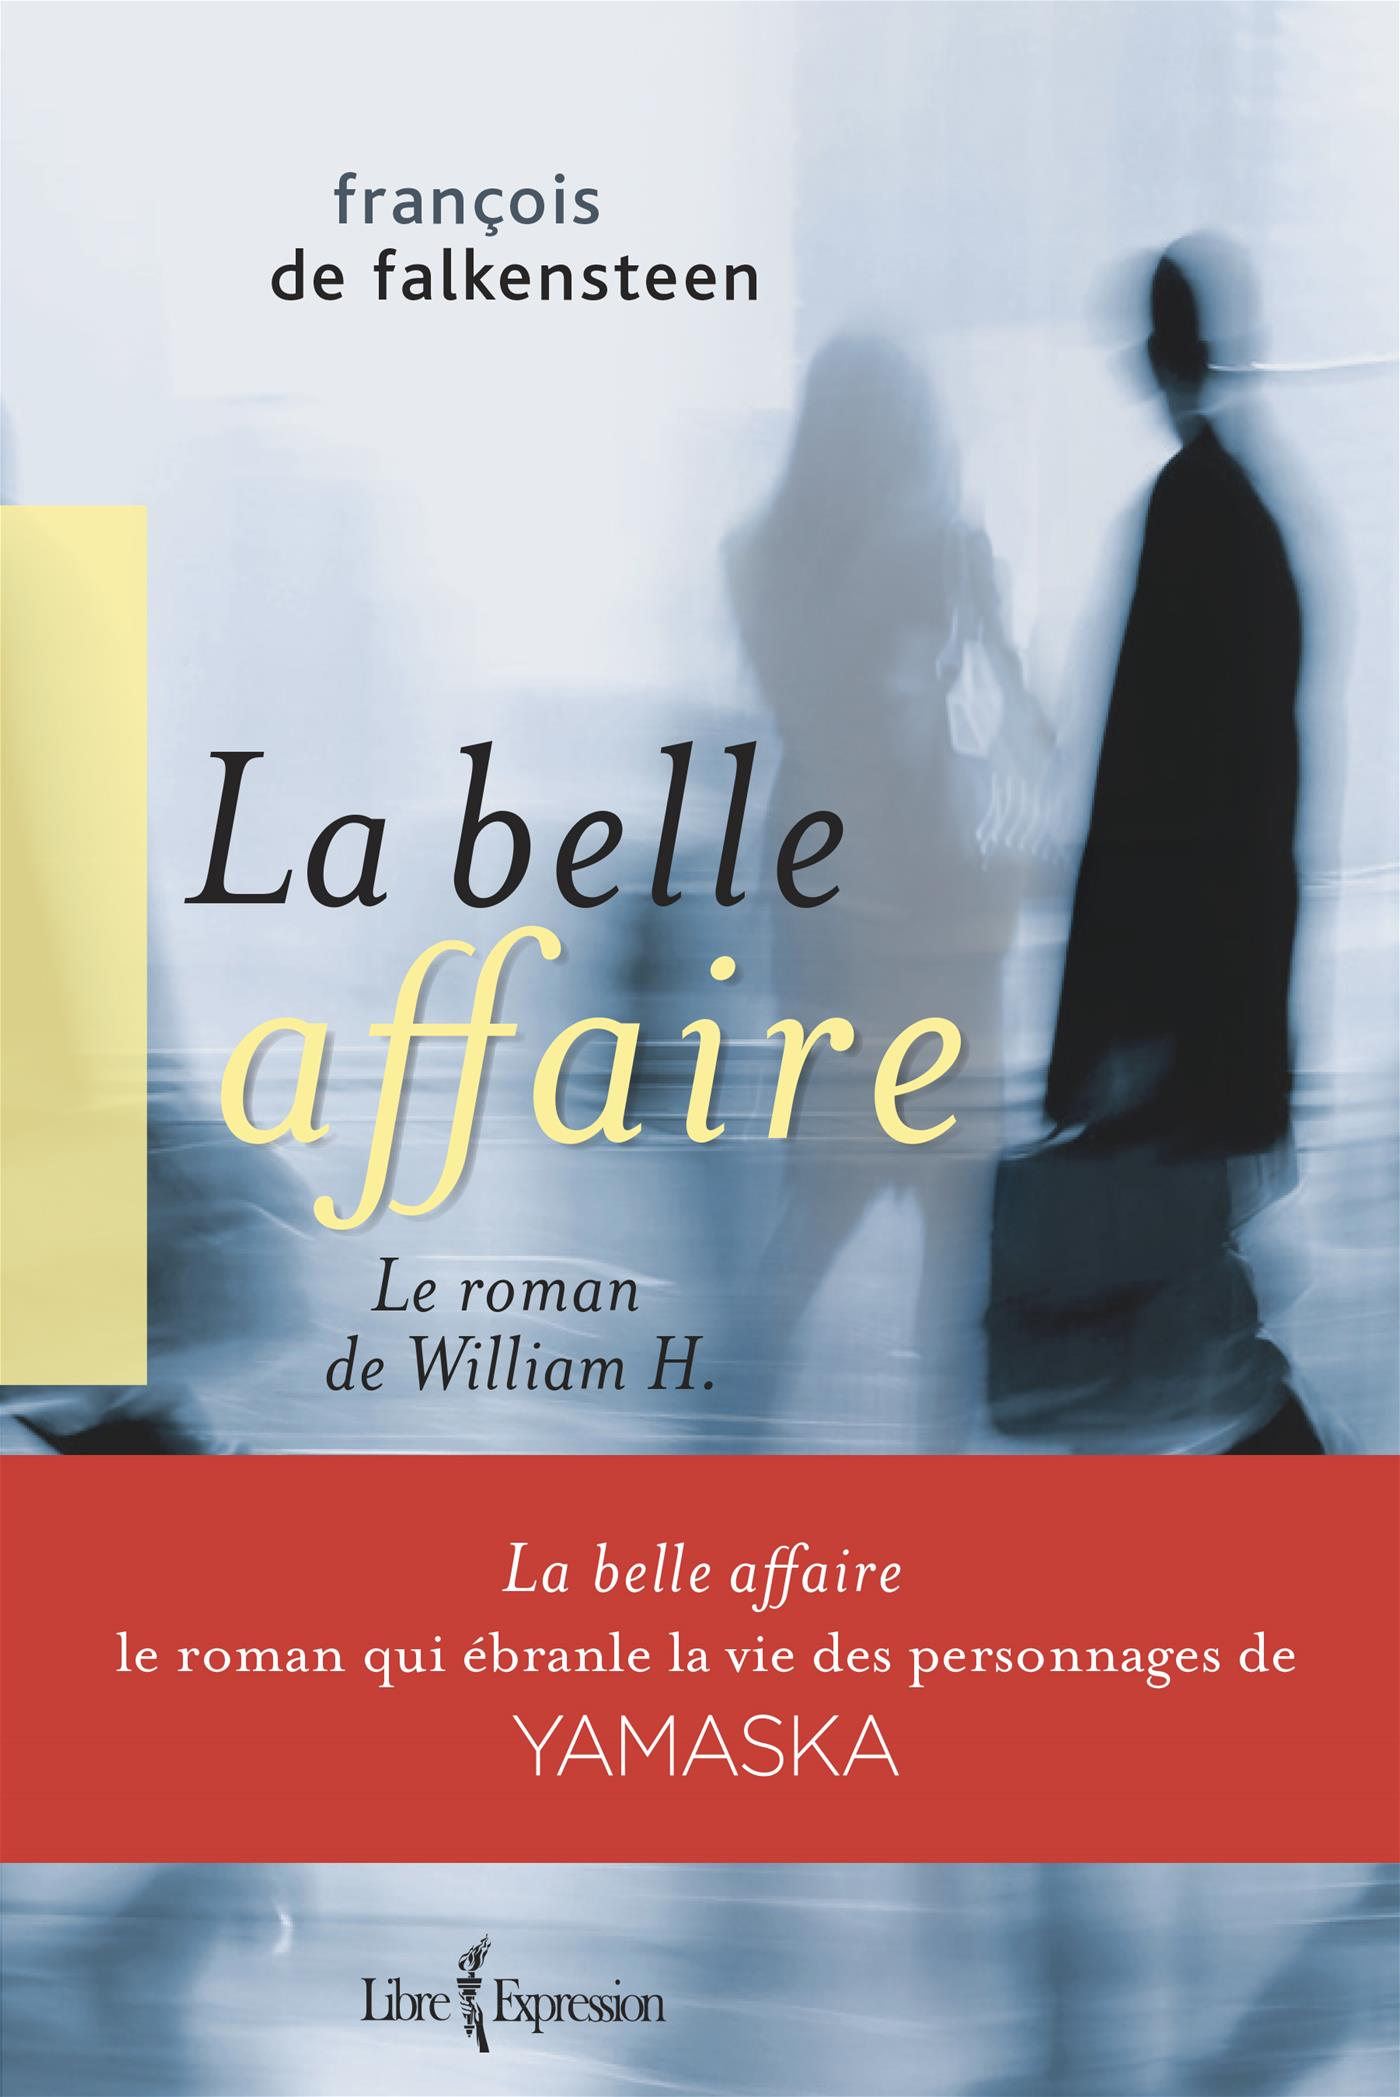 Vignette du livre Belle affaire (La): Le roman de William H.